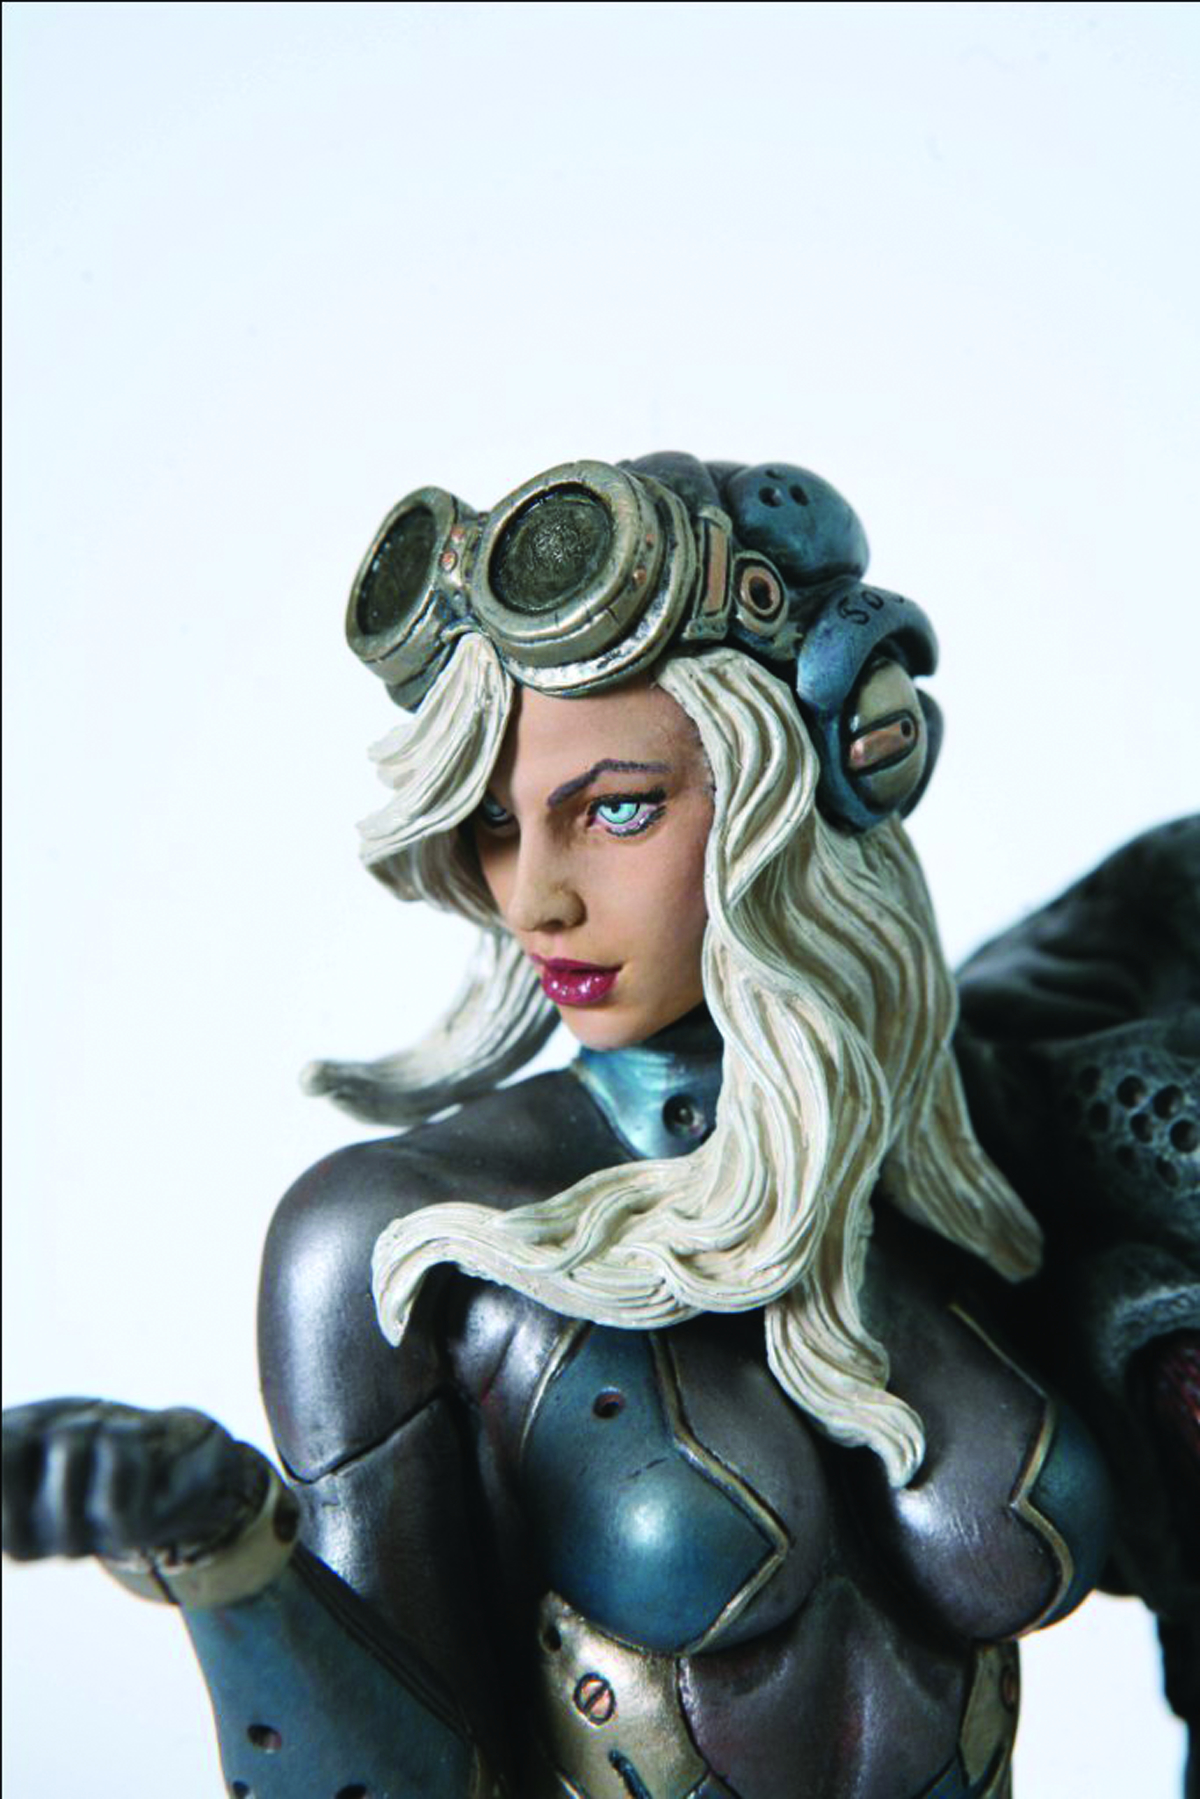 FFG SPACE HOST GIRL STATUE